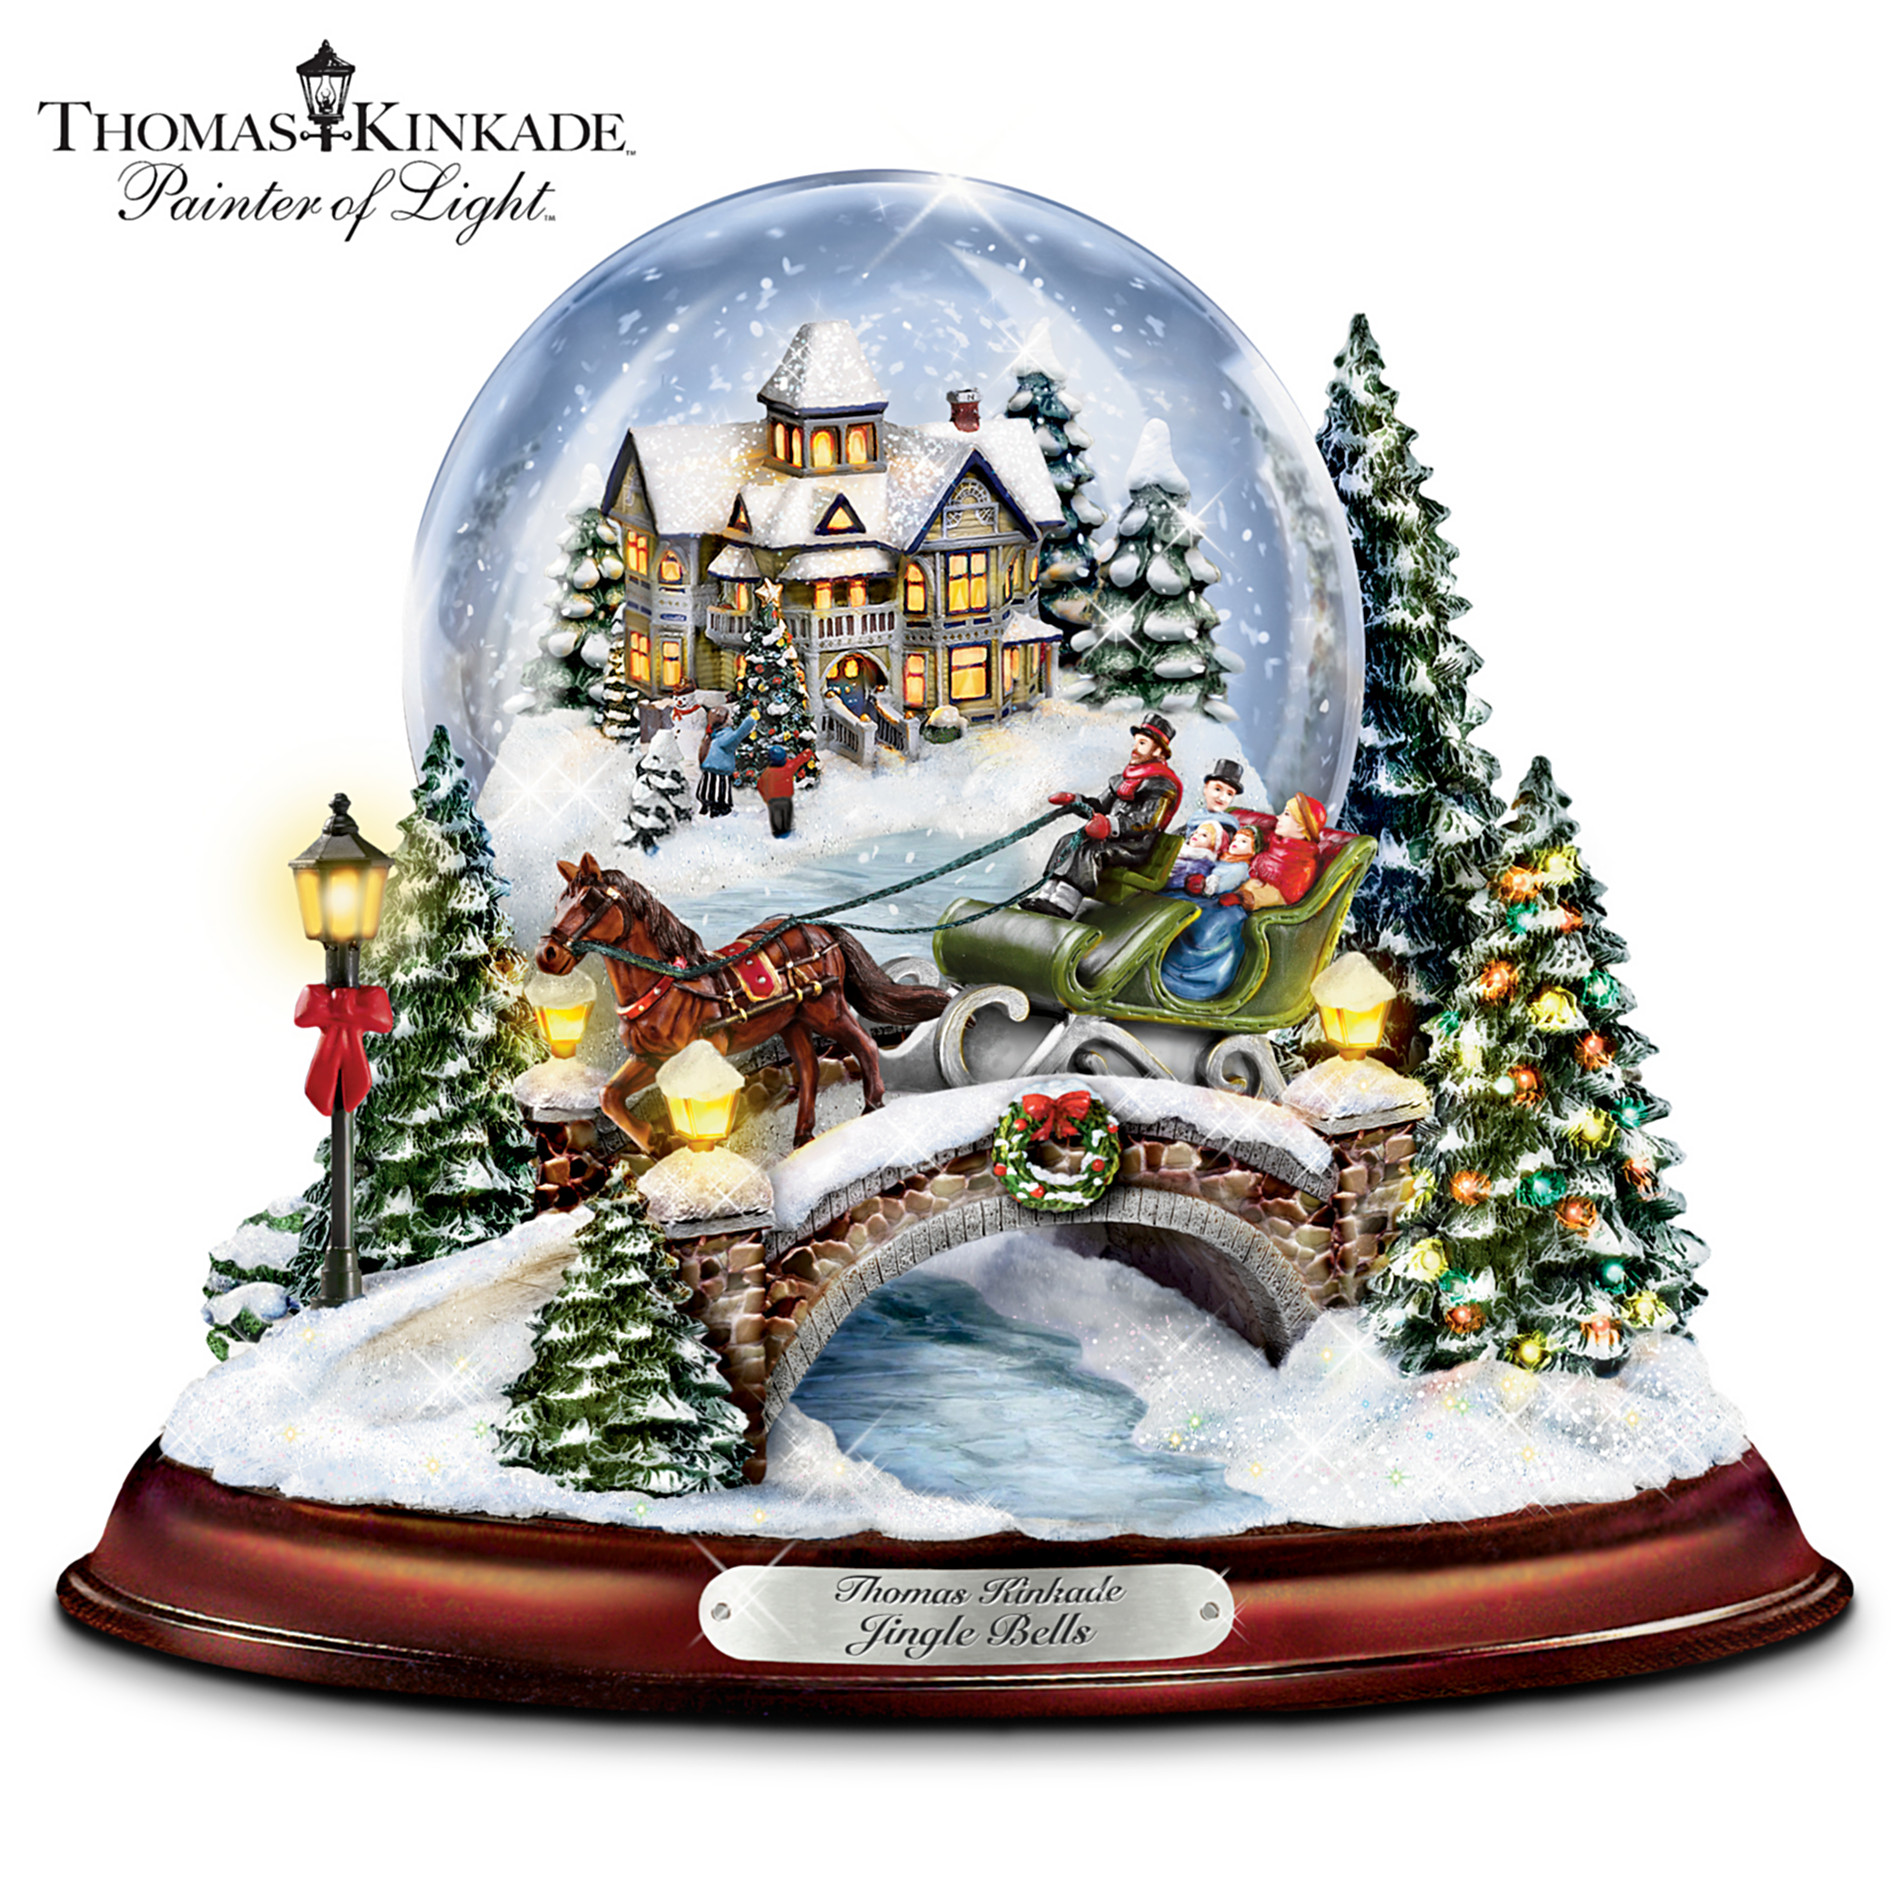 The Bradford Exchange Thomas Kinkade Jingle Bells Illuminated Musical Christmas Snowglobe at Sears.com